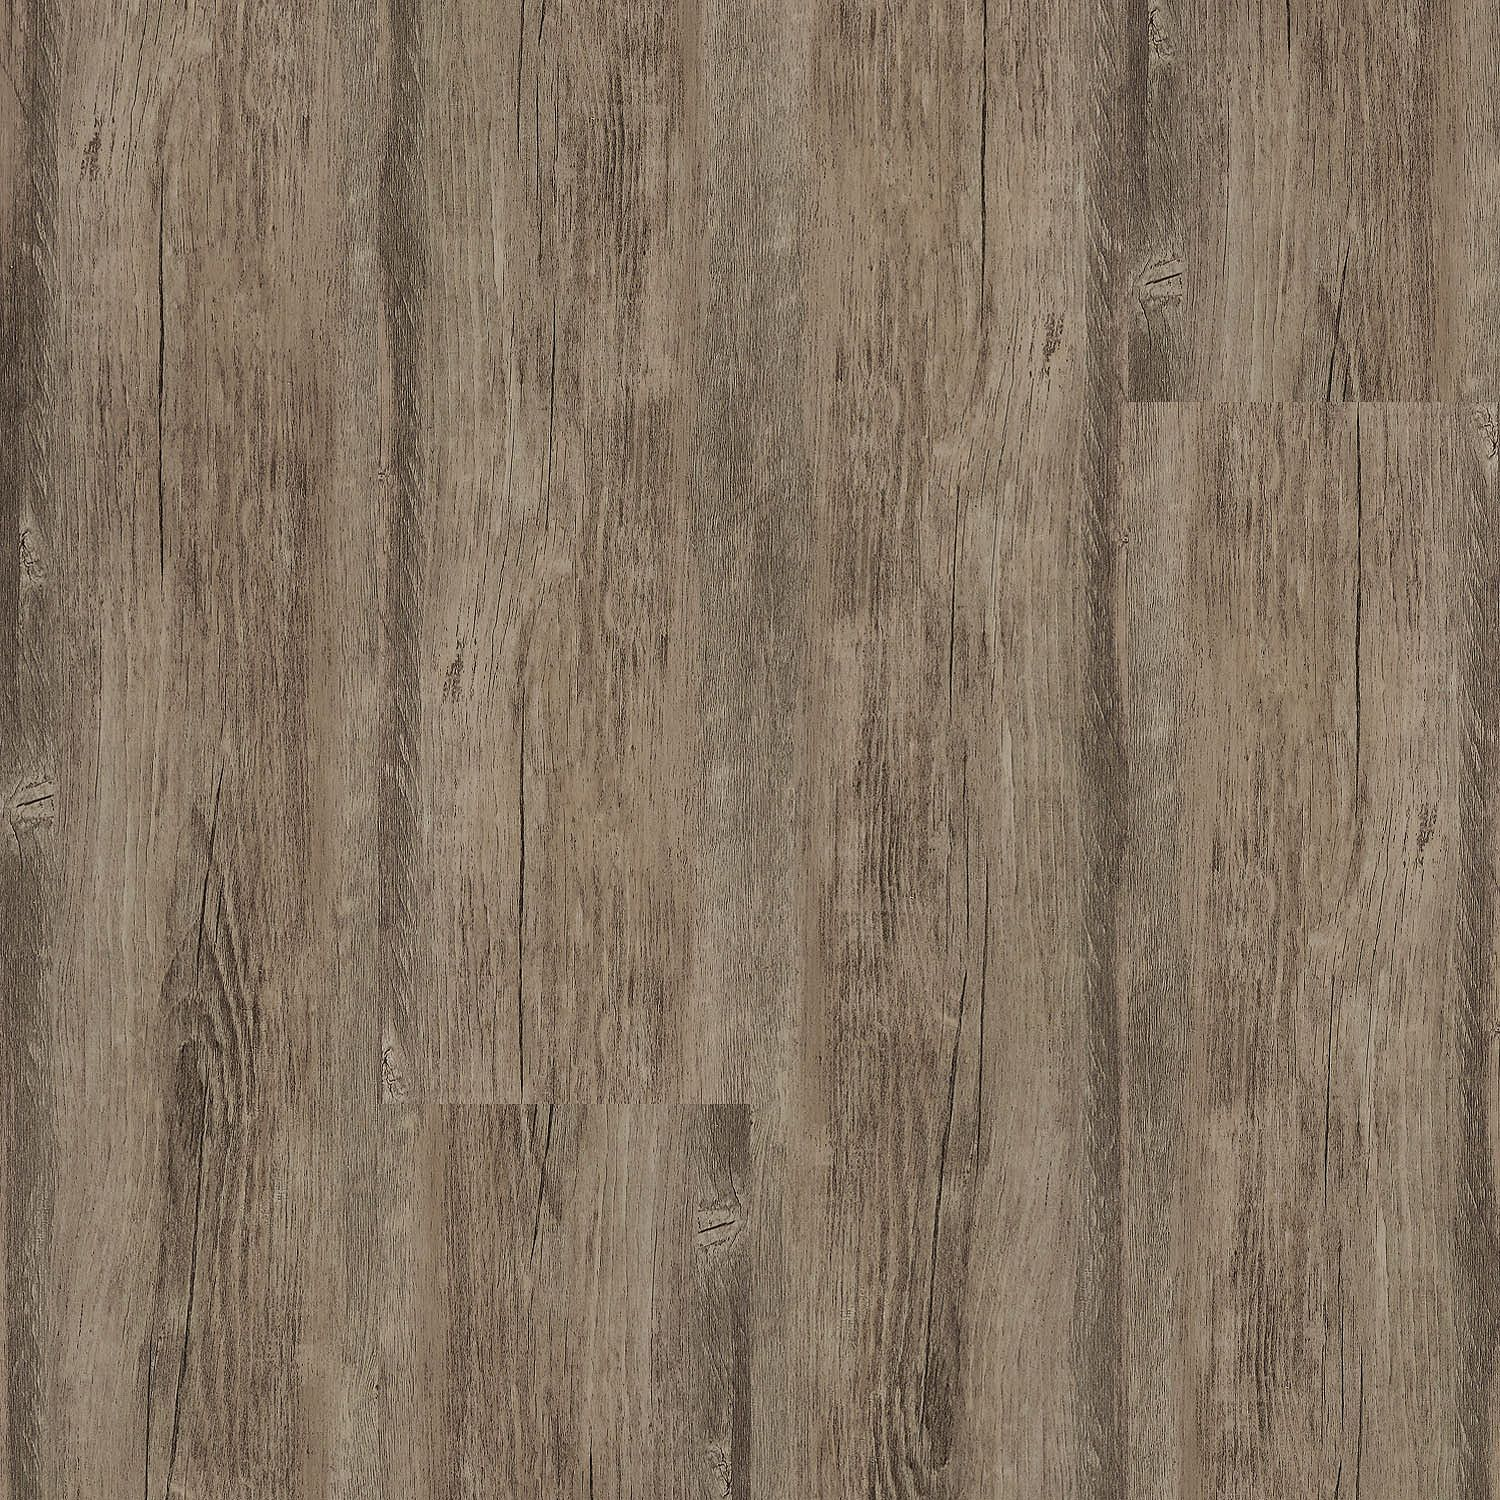 Wunderbar Select Surfaces Weathered Oak Premium Engineered Vinyl Plank   Samu0027s Club